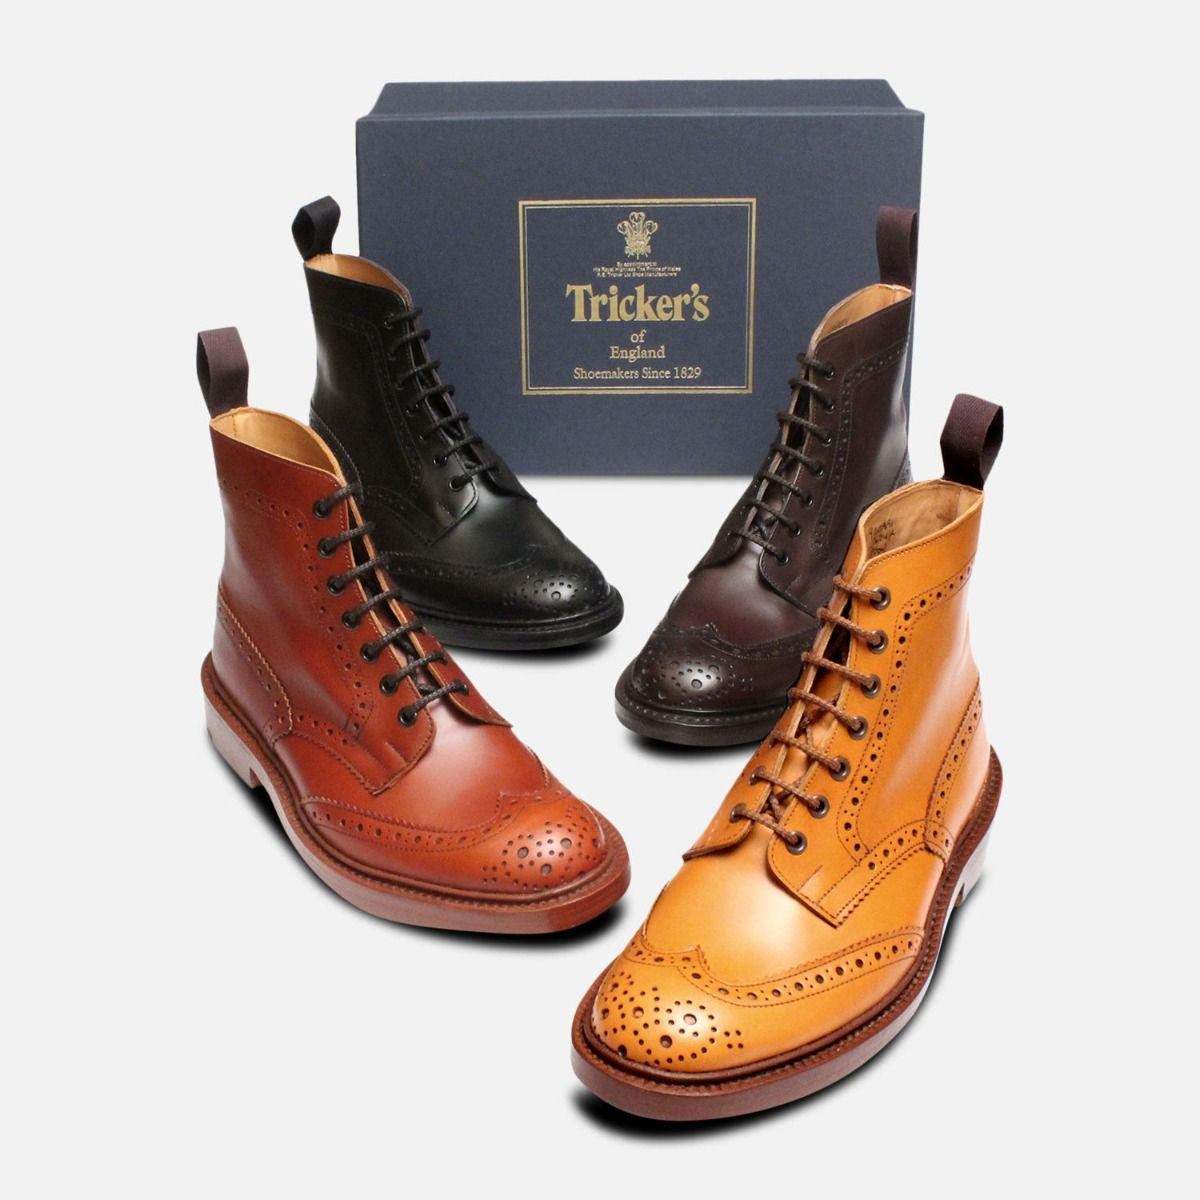 Trickers Stow Acorn Country Brogue Boots